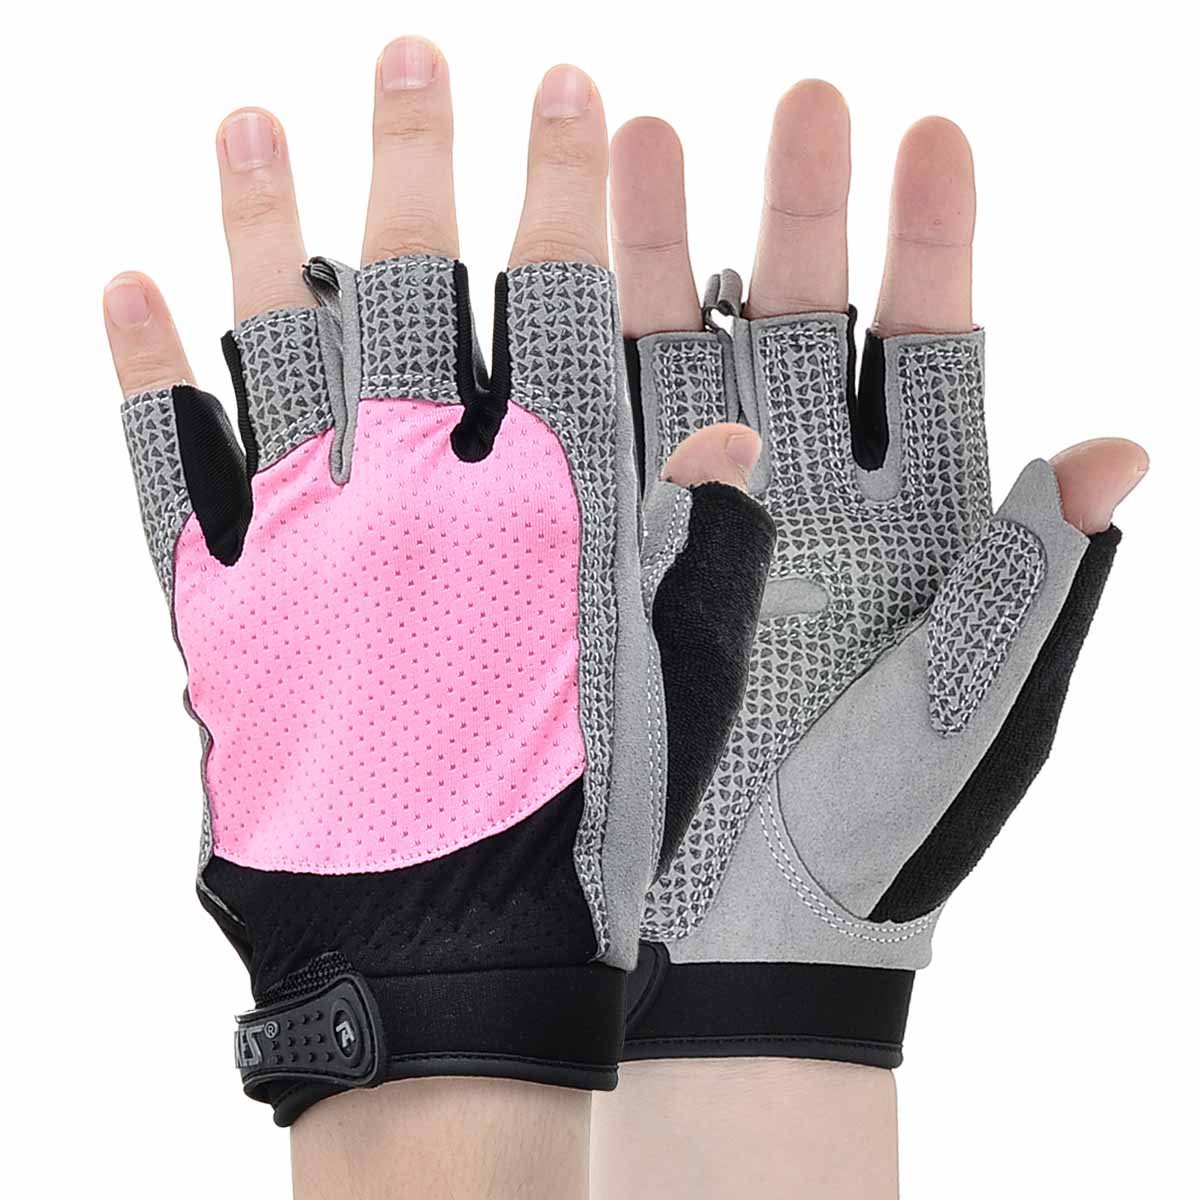 Aqf Weight Lifting Gloves Ultralight Breathable Gym Gloves: Gloves